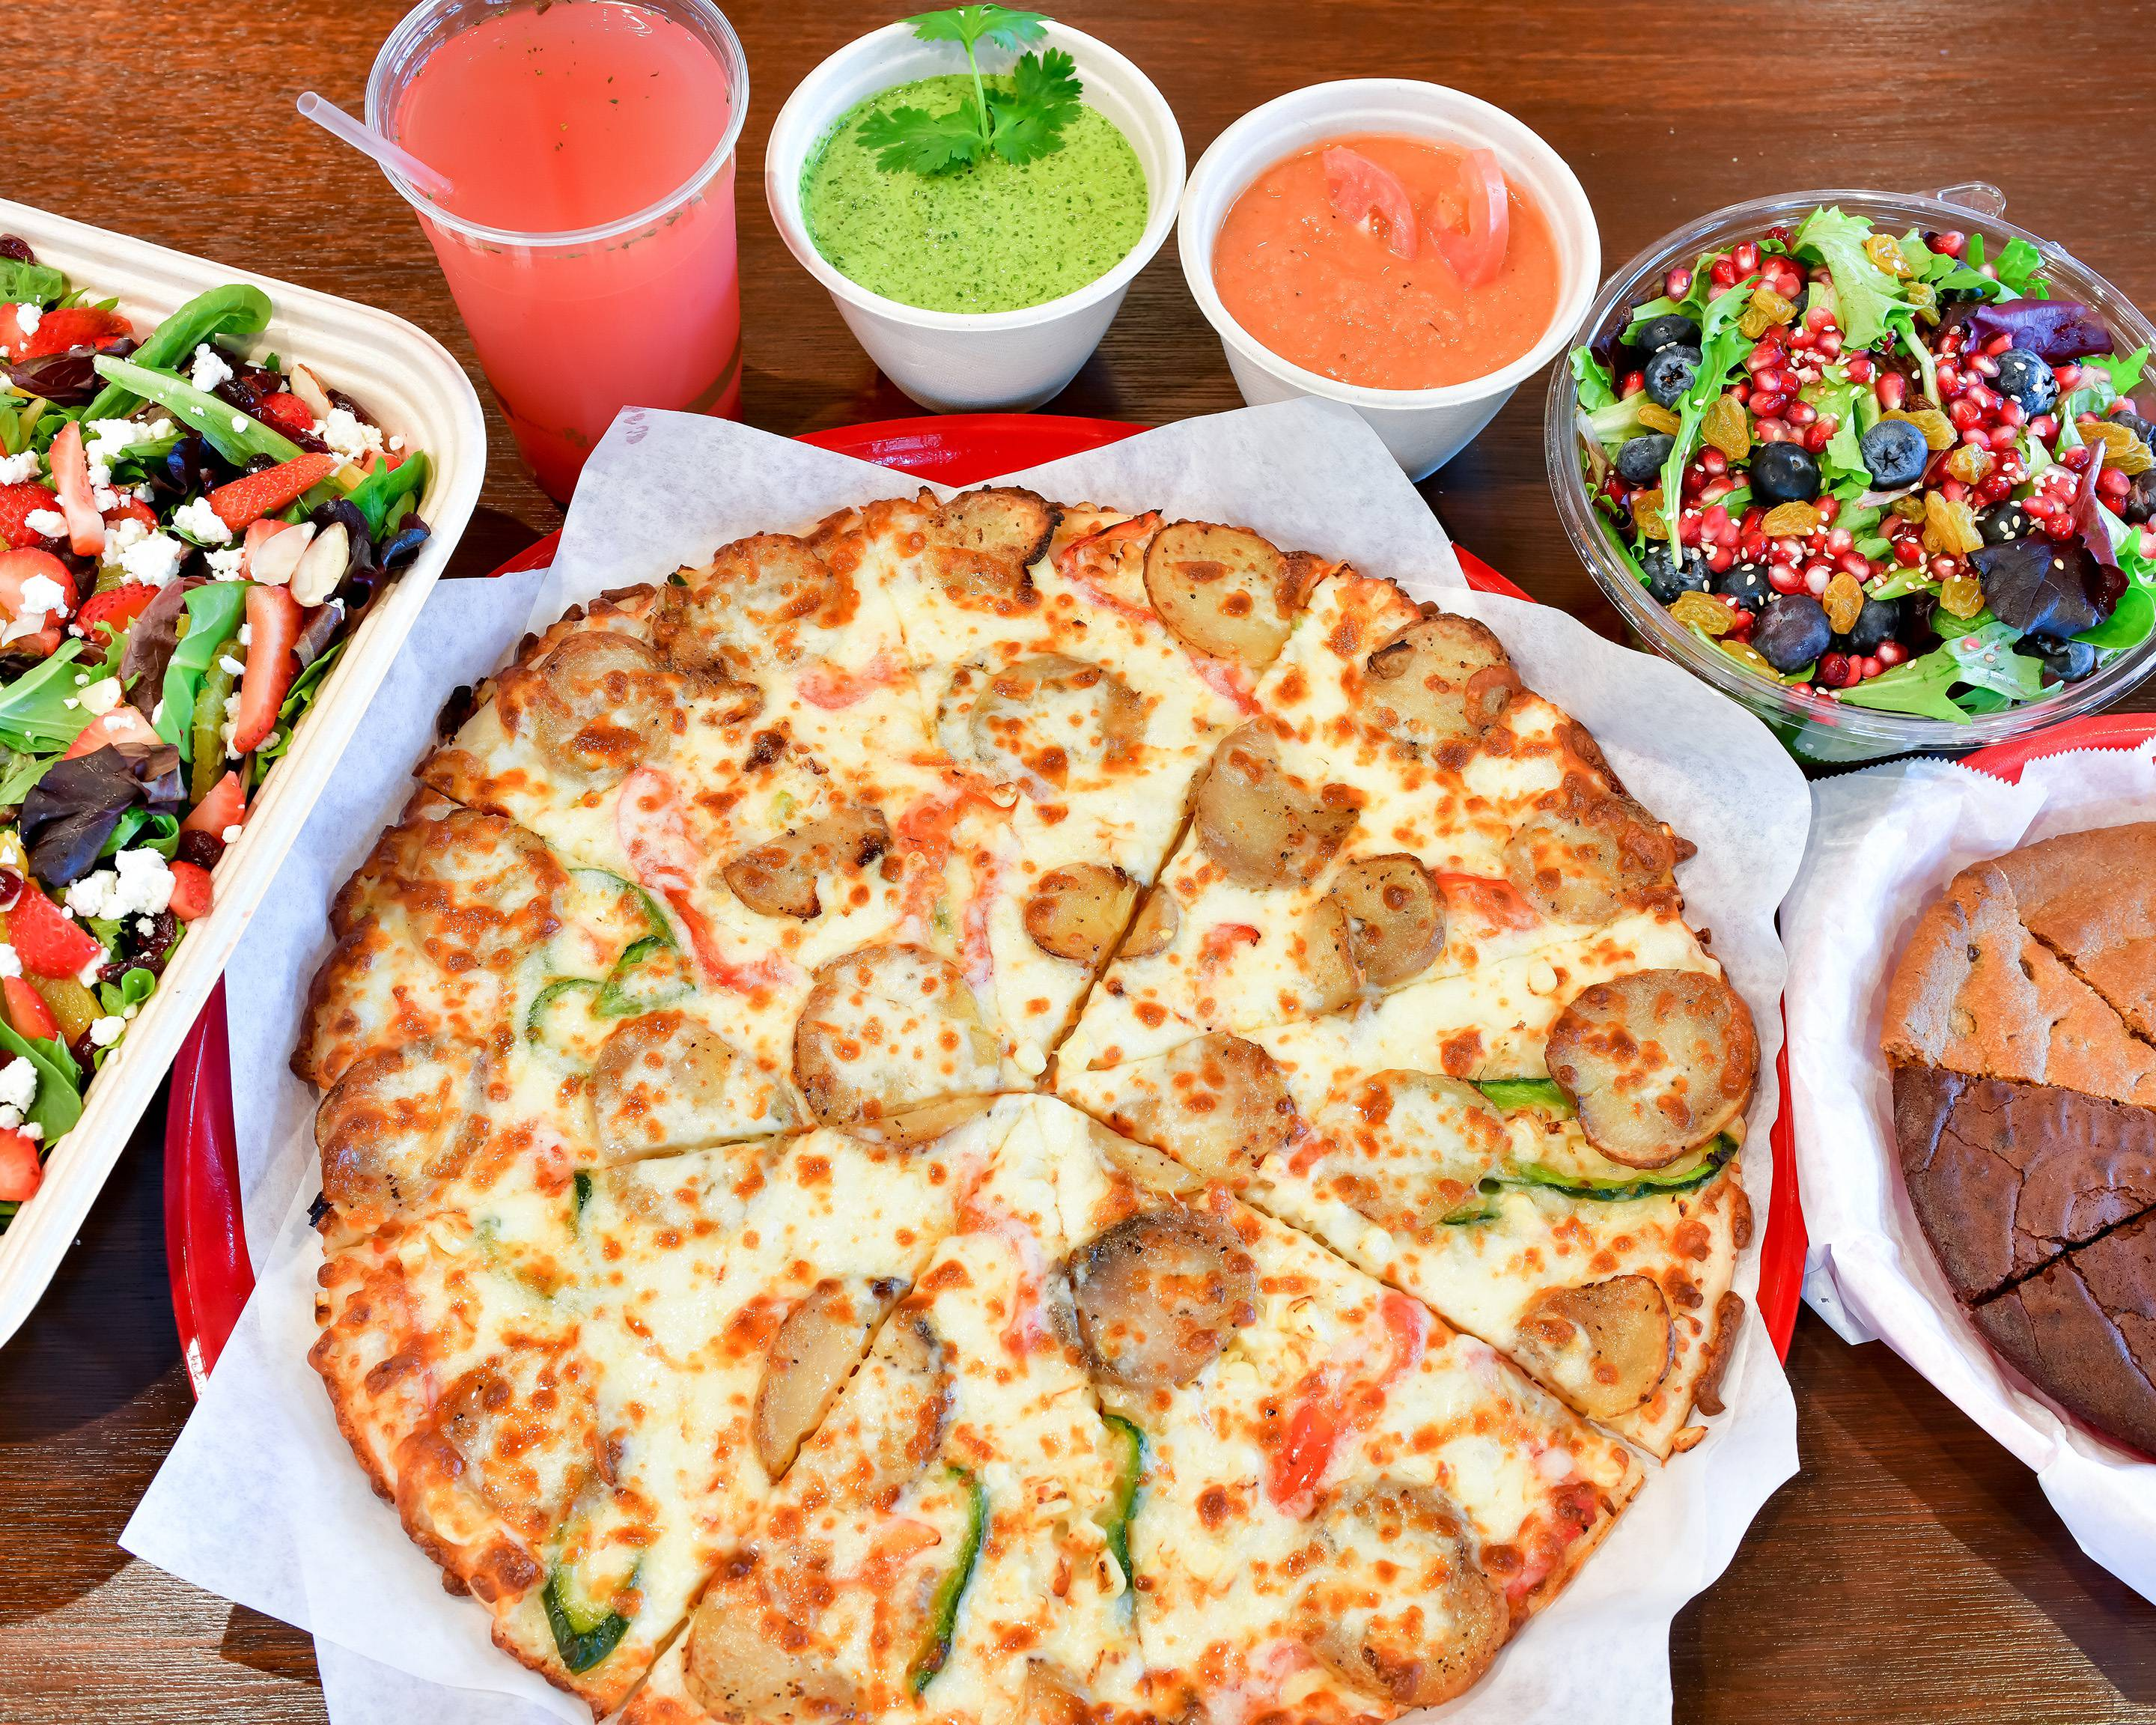 Order Sliver Pizzeria Telegraph Delivery Online San Francisco Bay Area Menu Prices Uber Eats Fresh roma tomato, red onions, mozzarella and bulgarian feta cheese, lemon juice, lemon zest and garlic olive oil. sliver pizzeria telegraph delivery